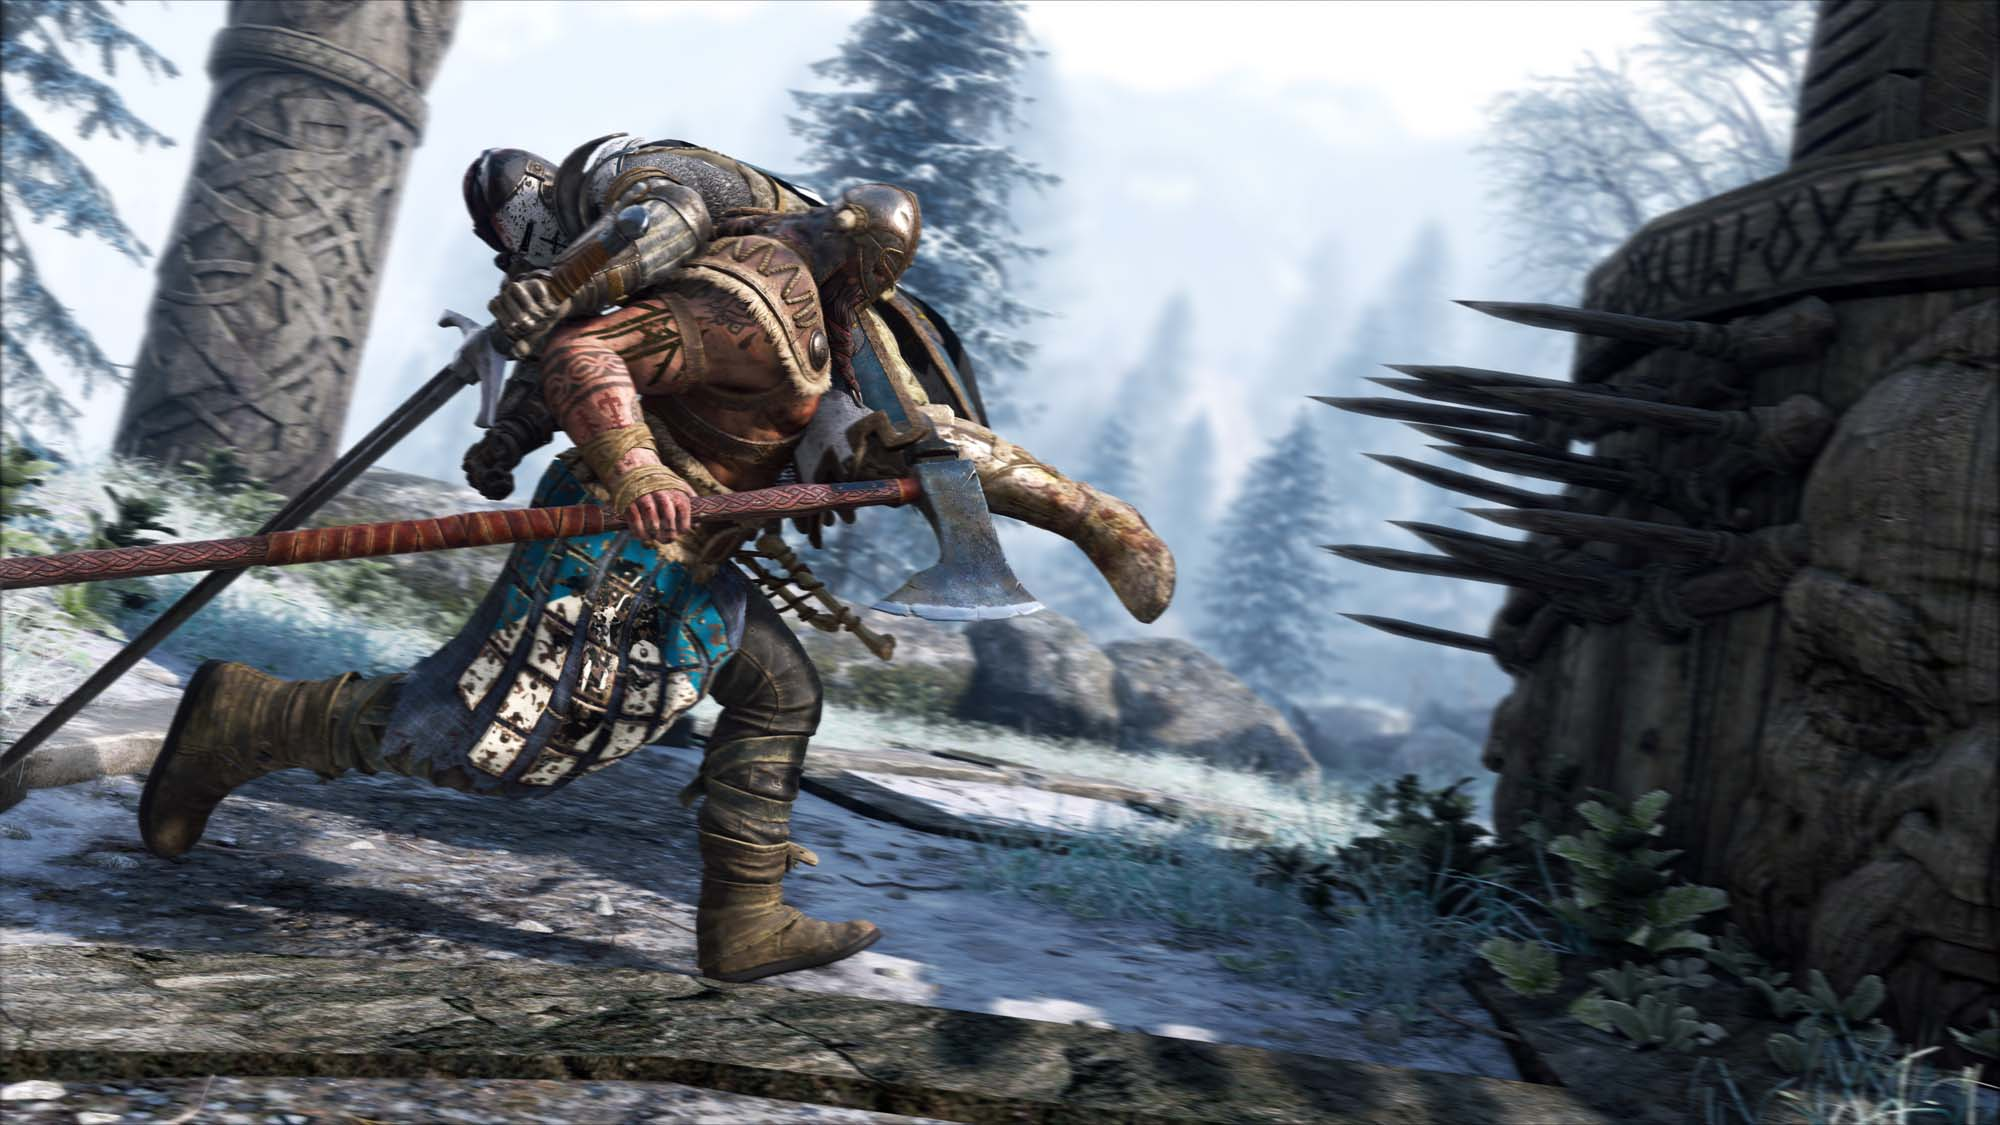 I was completely wrong about Ubisoft brawler For Honor - Image at